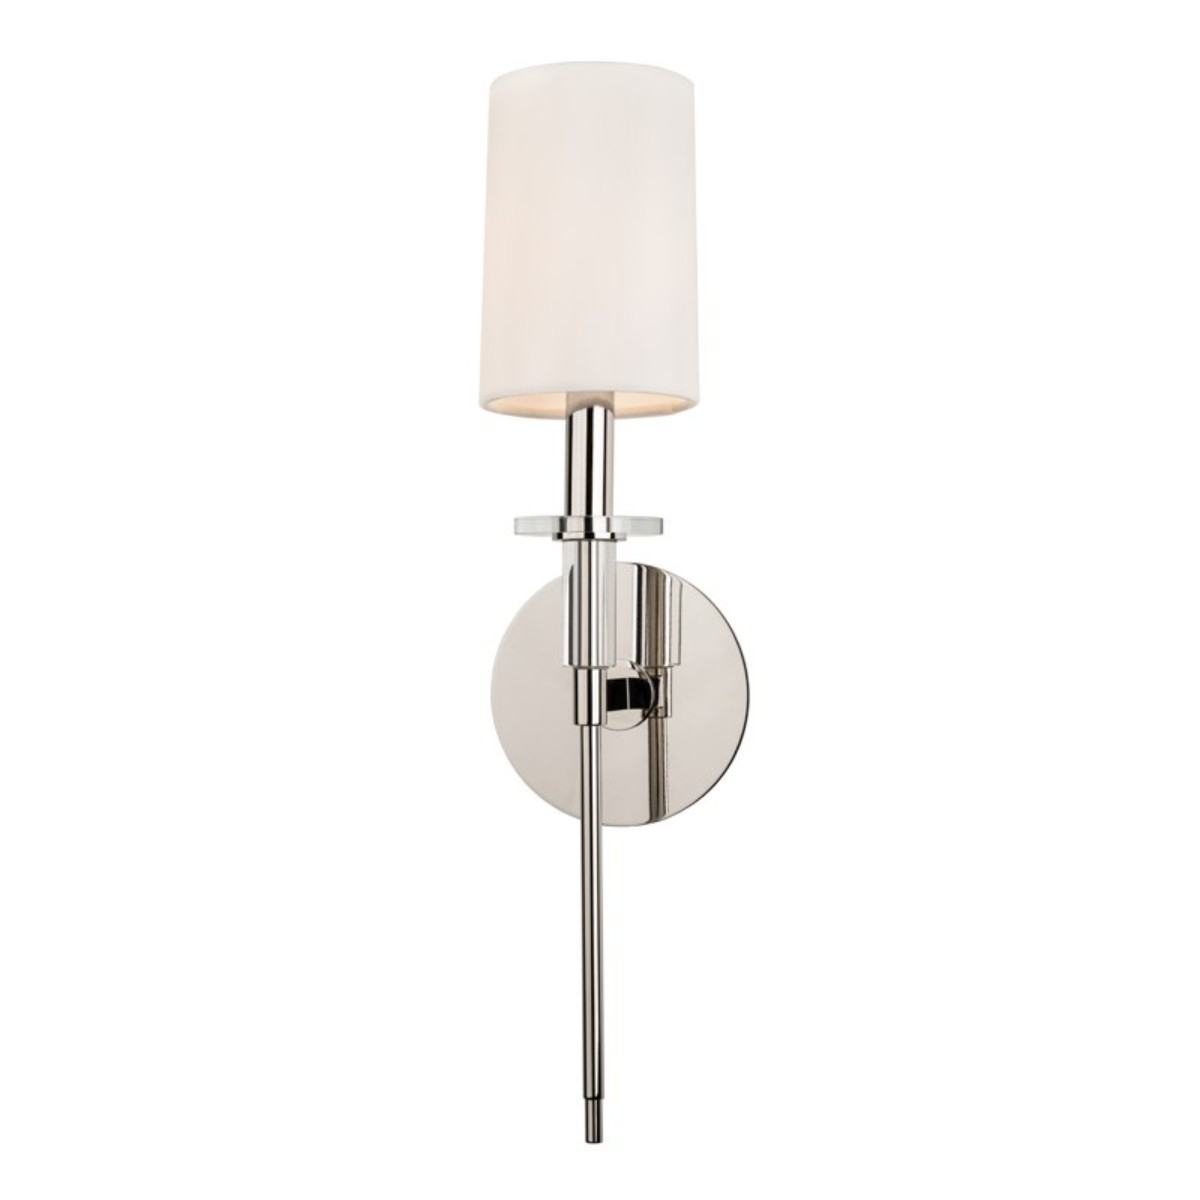 Hudson Valley   Amherst Wall Light   Polished Nickel